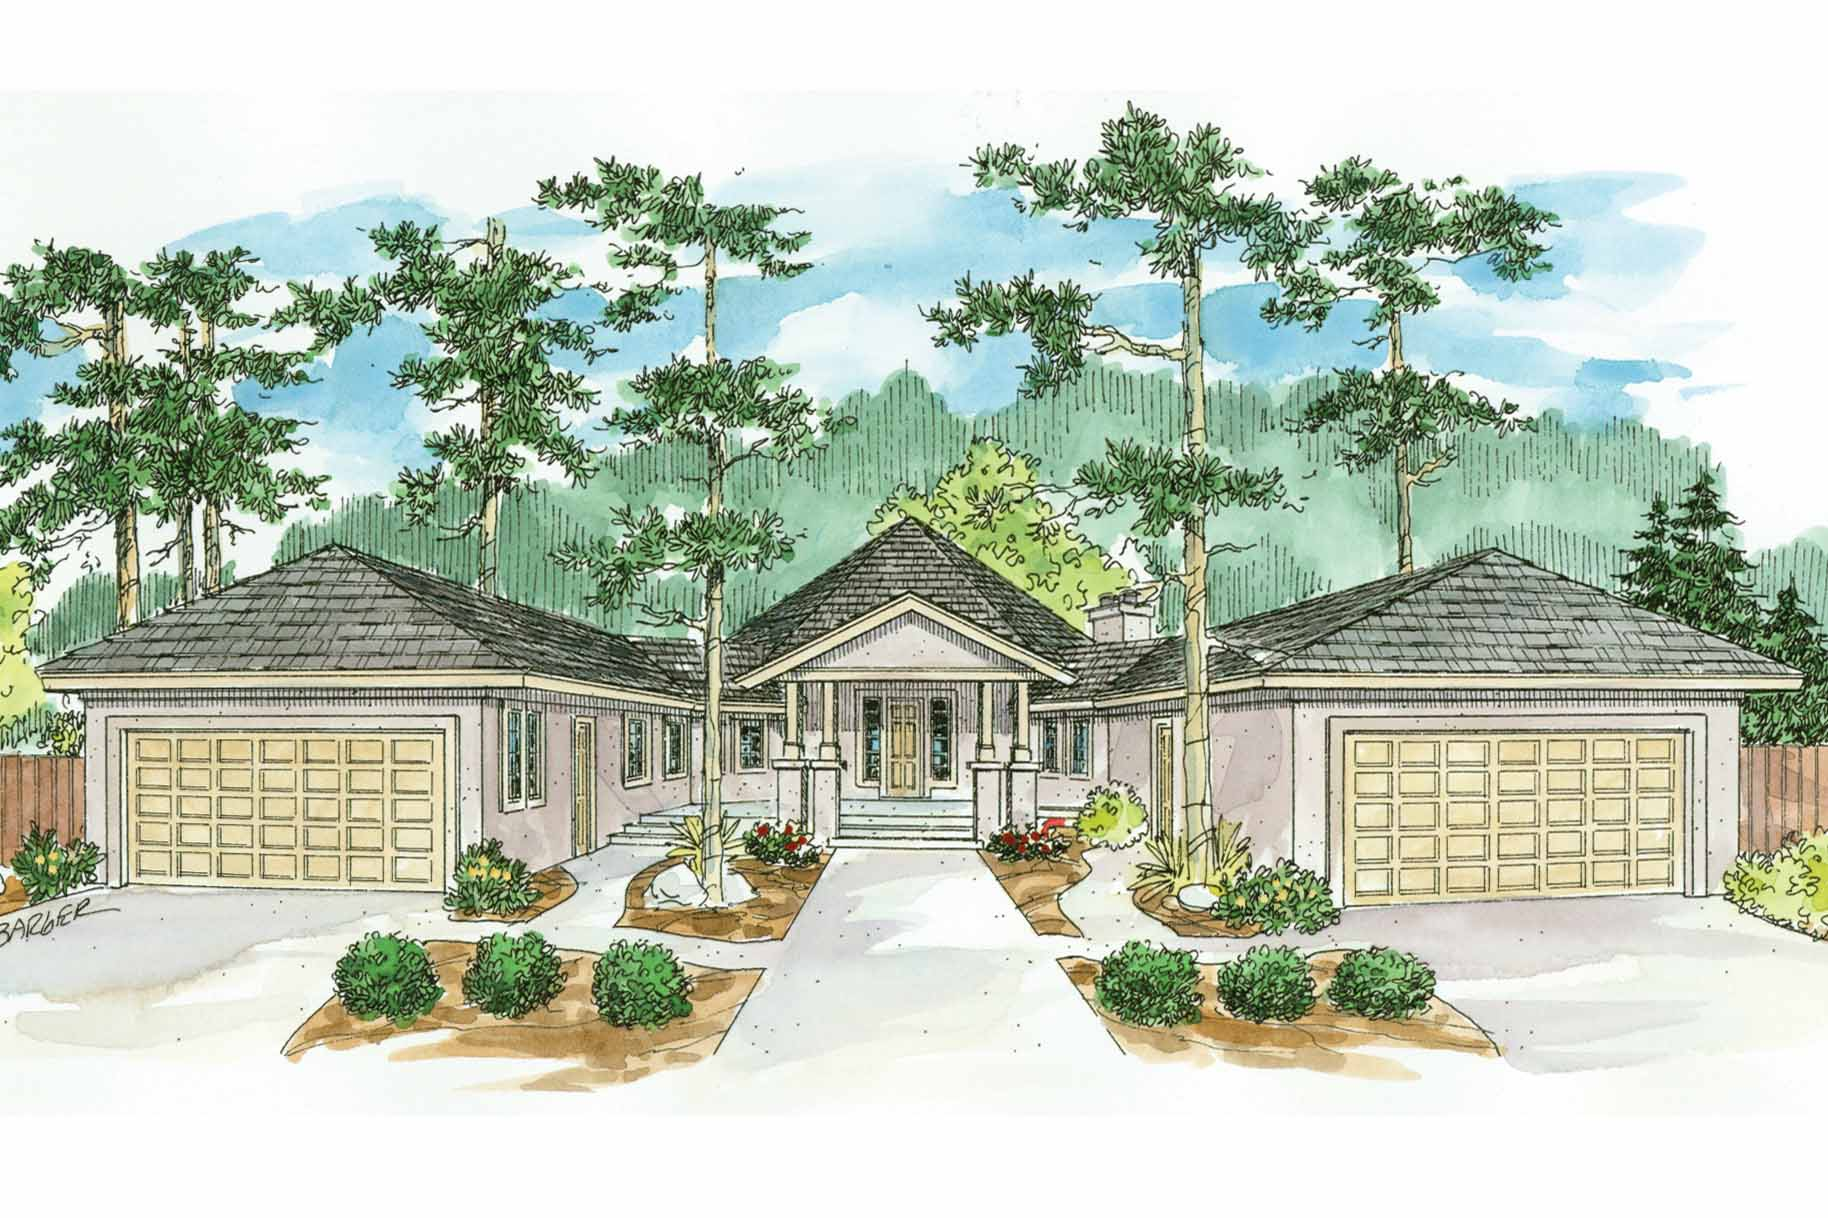 Florida house plans florida home plans florida style Floridian house plans